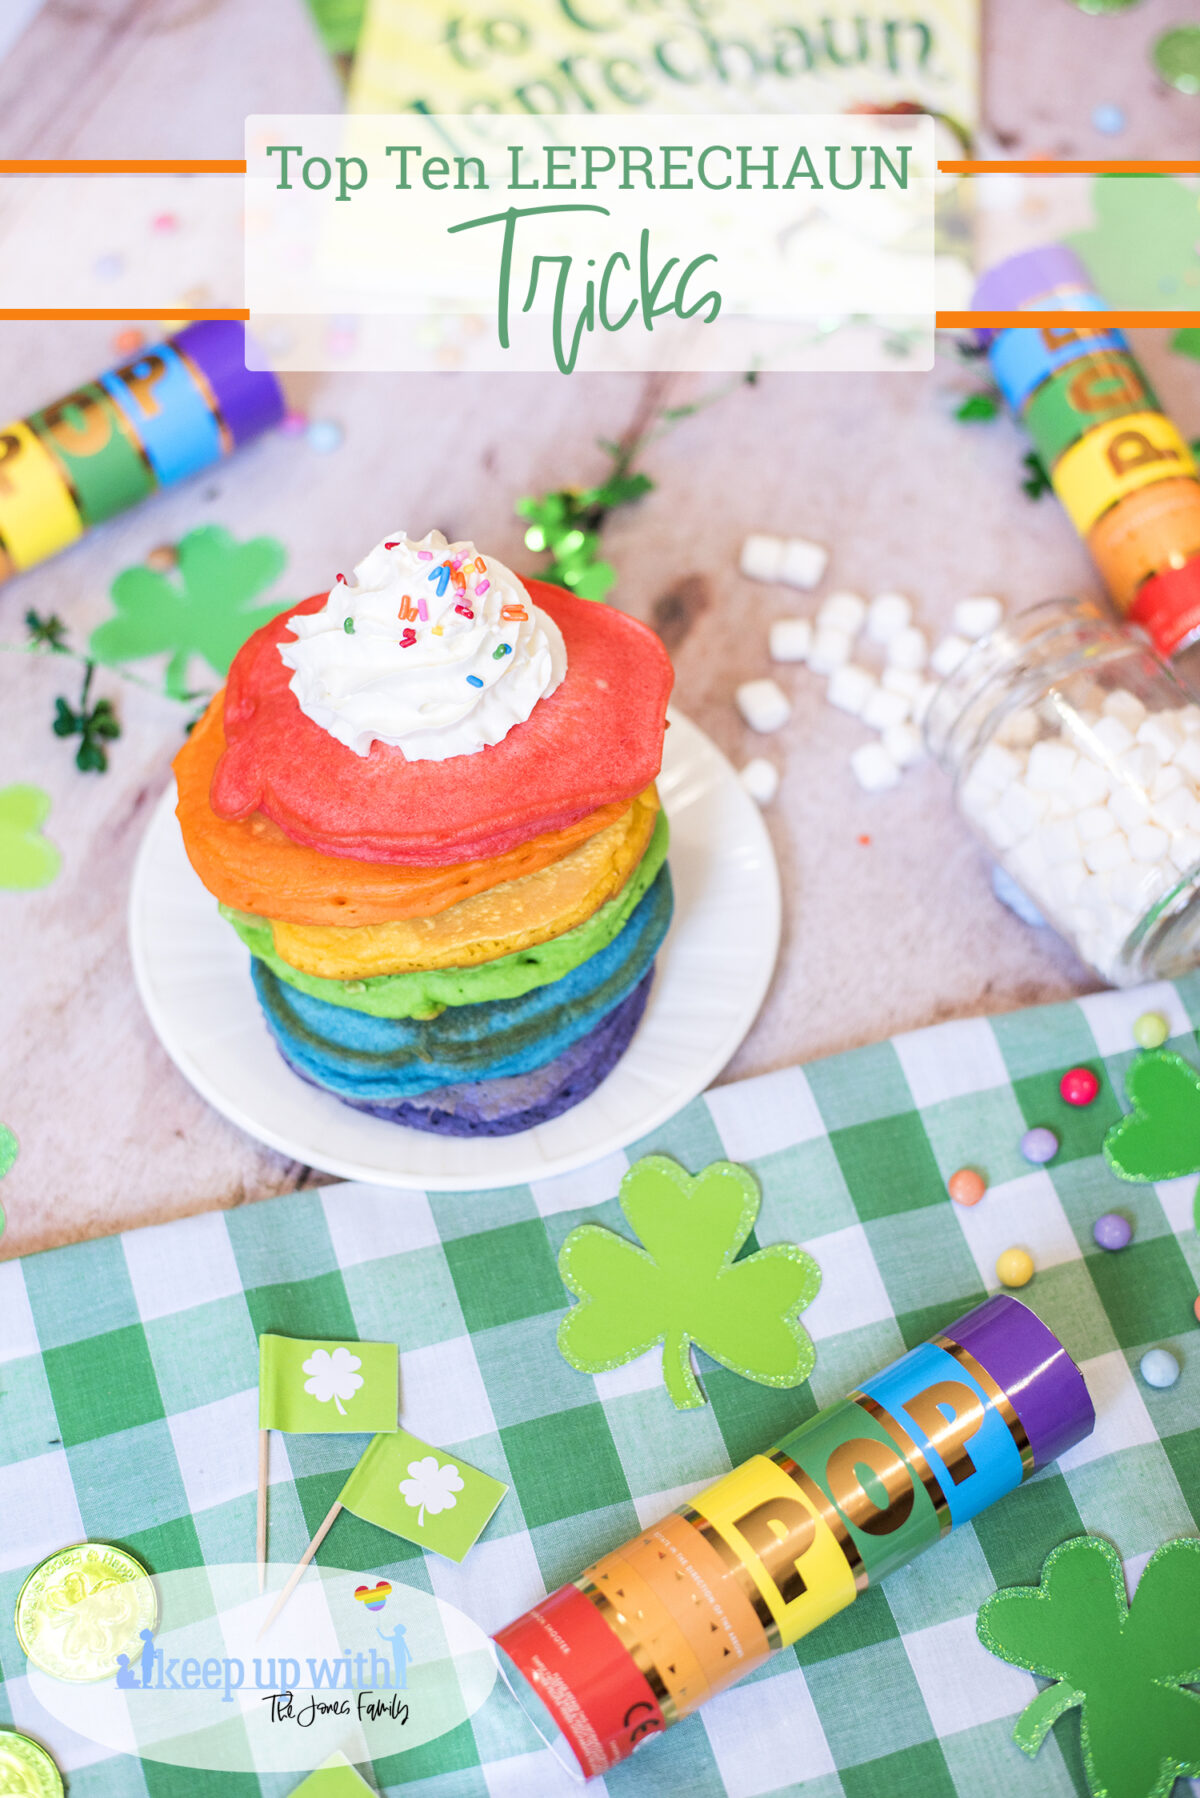 Top ten leprechaun tricks for st. patricks day. Image shows stack of rainbow pancakes on top of a St. Patrick's day tablescape.  Green checkered gingham tablecloth, leprechaun gold and rainbow confetti cannons.  There are little green flags featuring white shamrocks and glittery card shamrocks, rainbow coloured sweets and candies and a jar of spilled marshmallows.